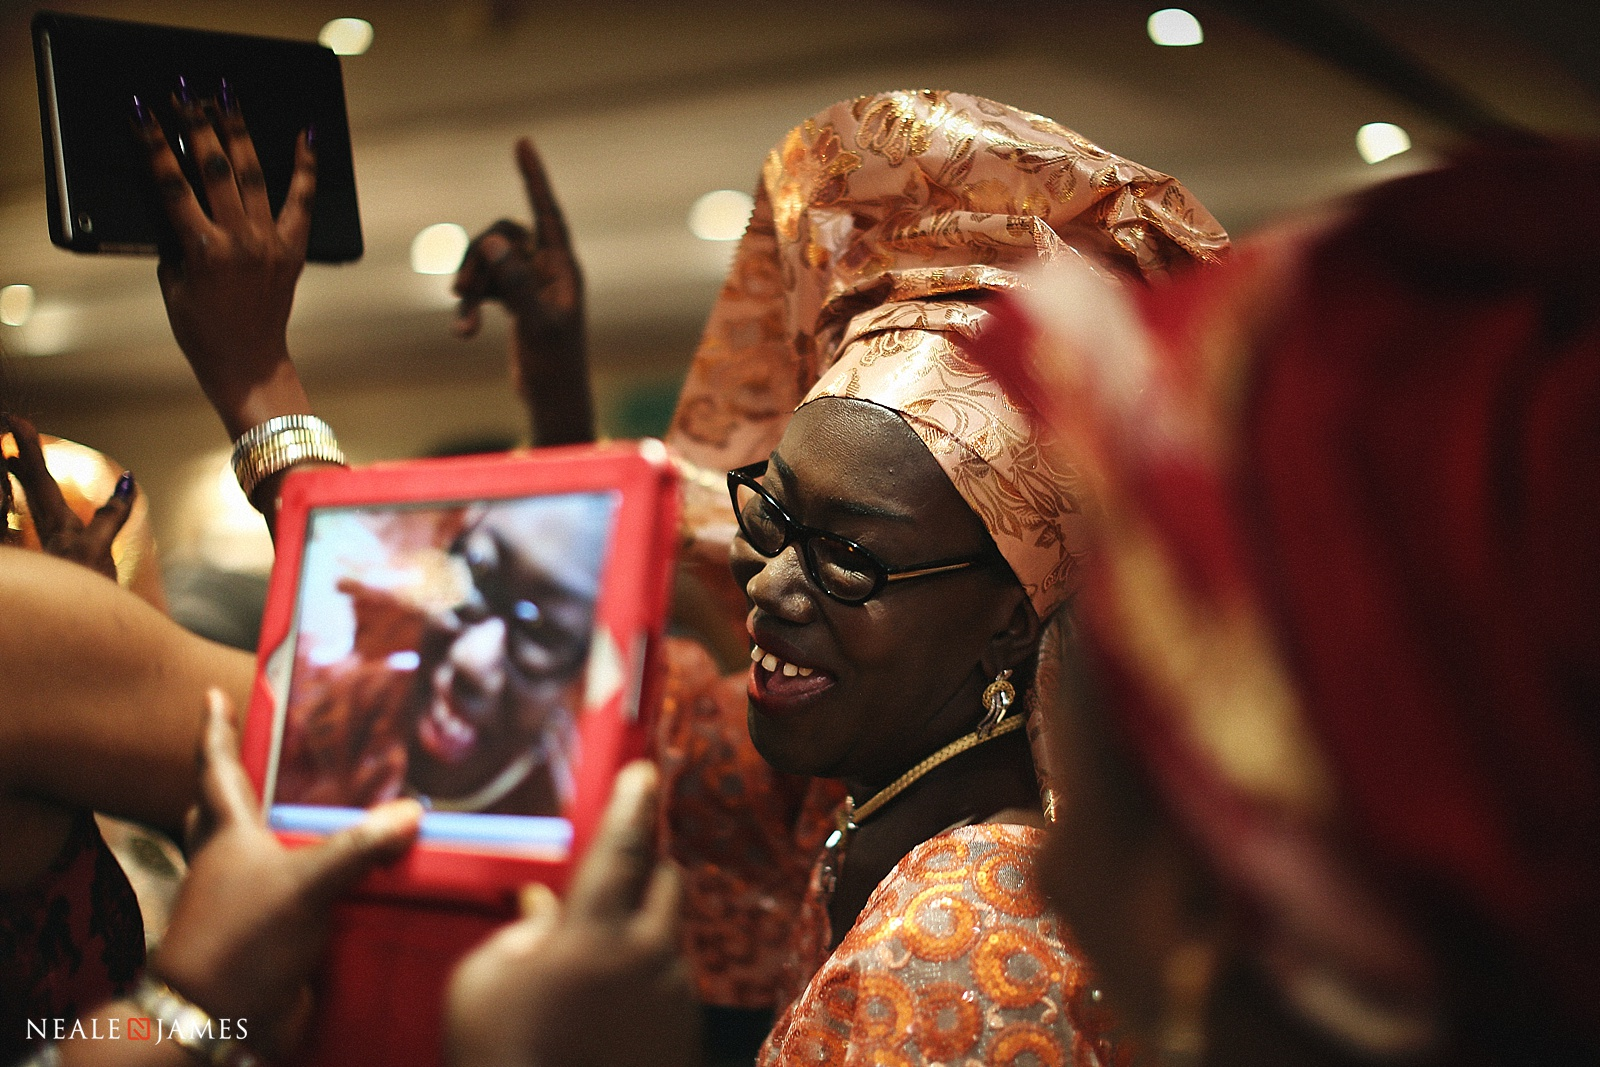 Colour picture of a Nigerian wedding in London